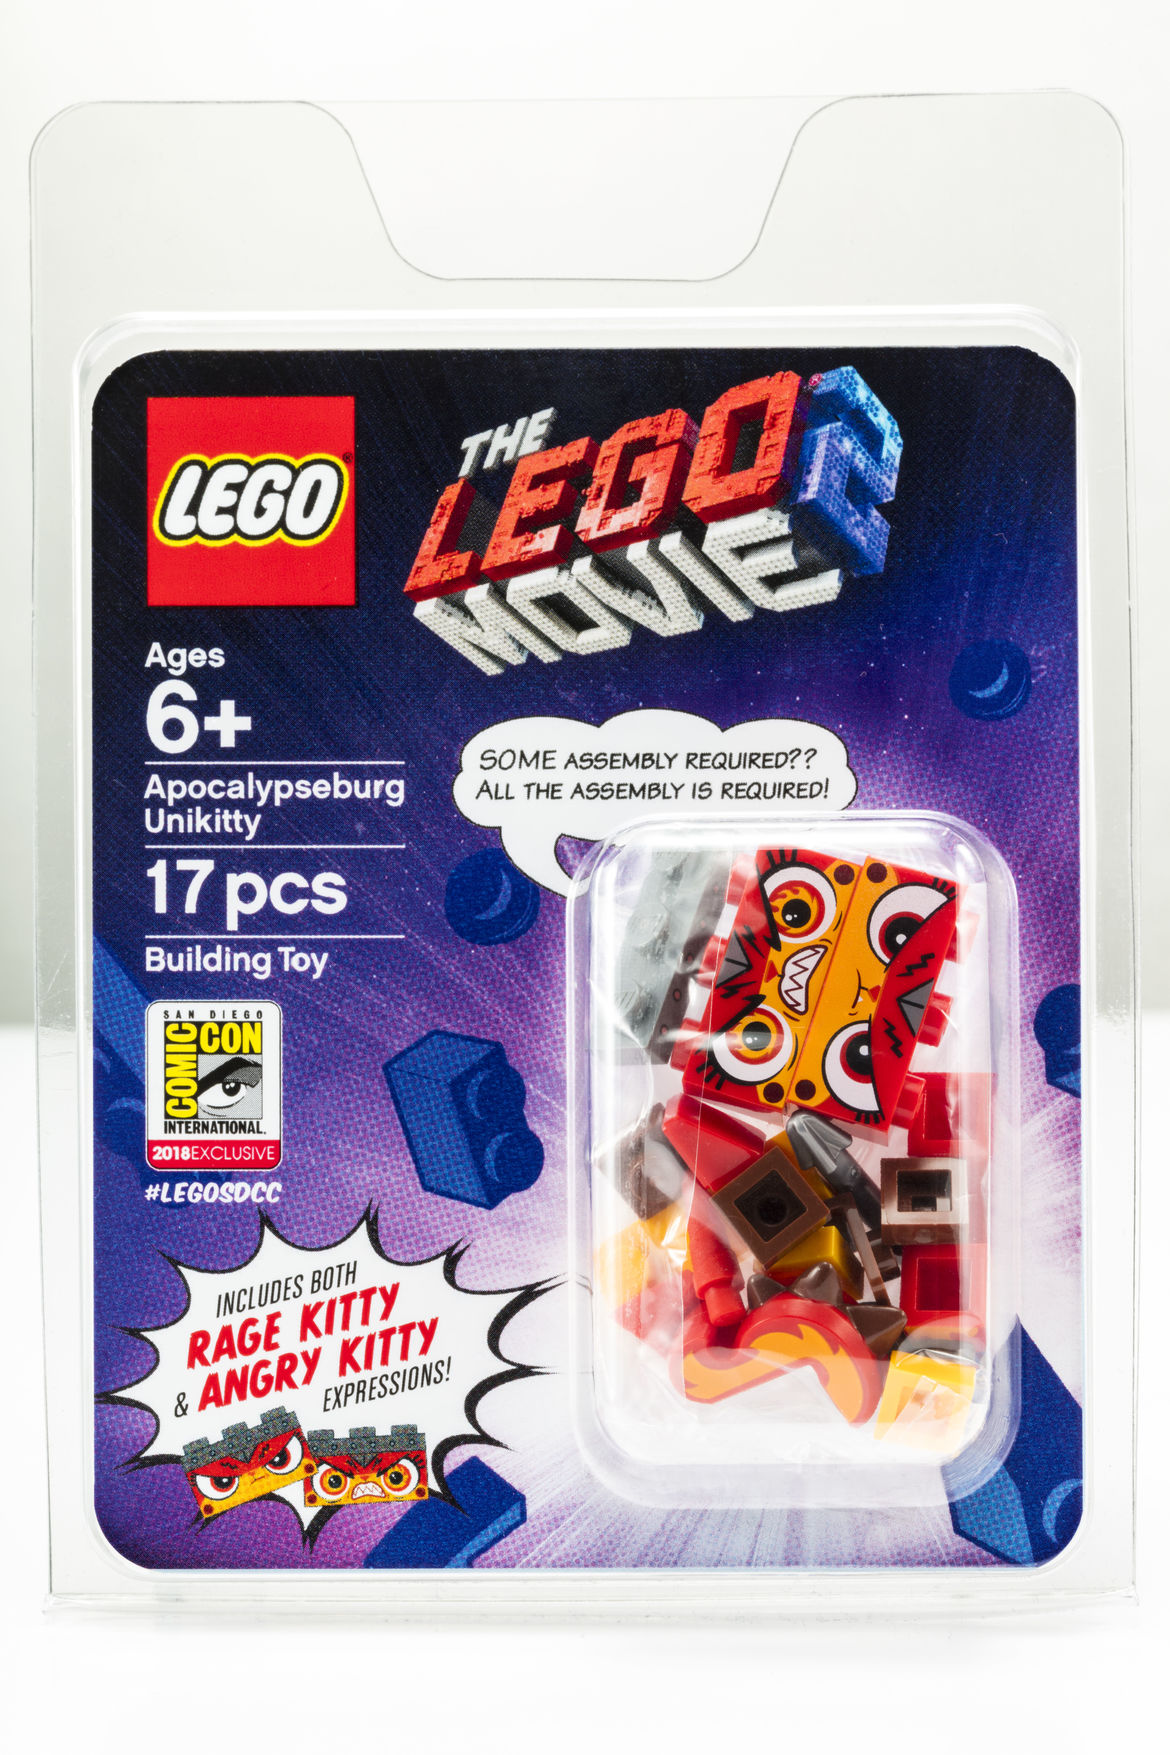 LEGO_SDCC_2018_Apocalypseburg_Unikitty_Packaging